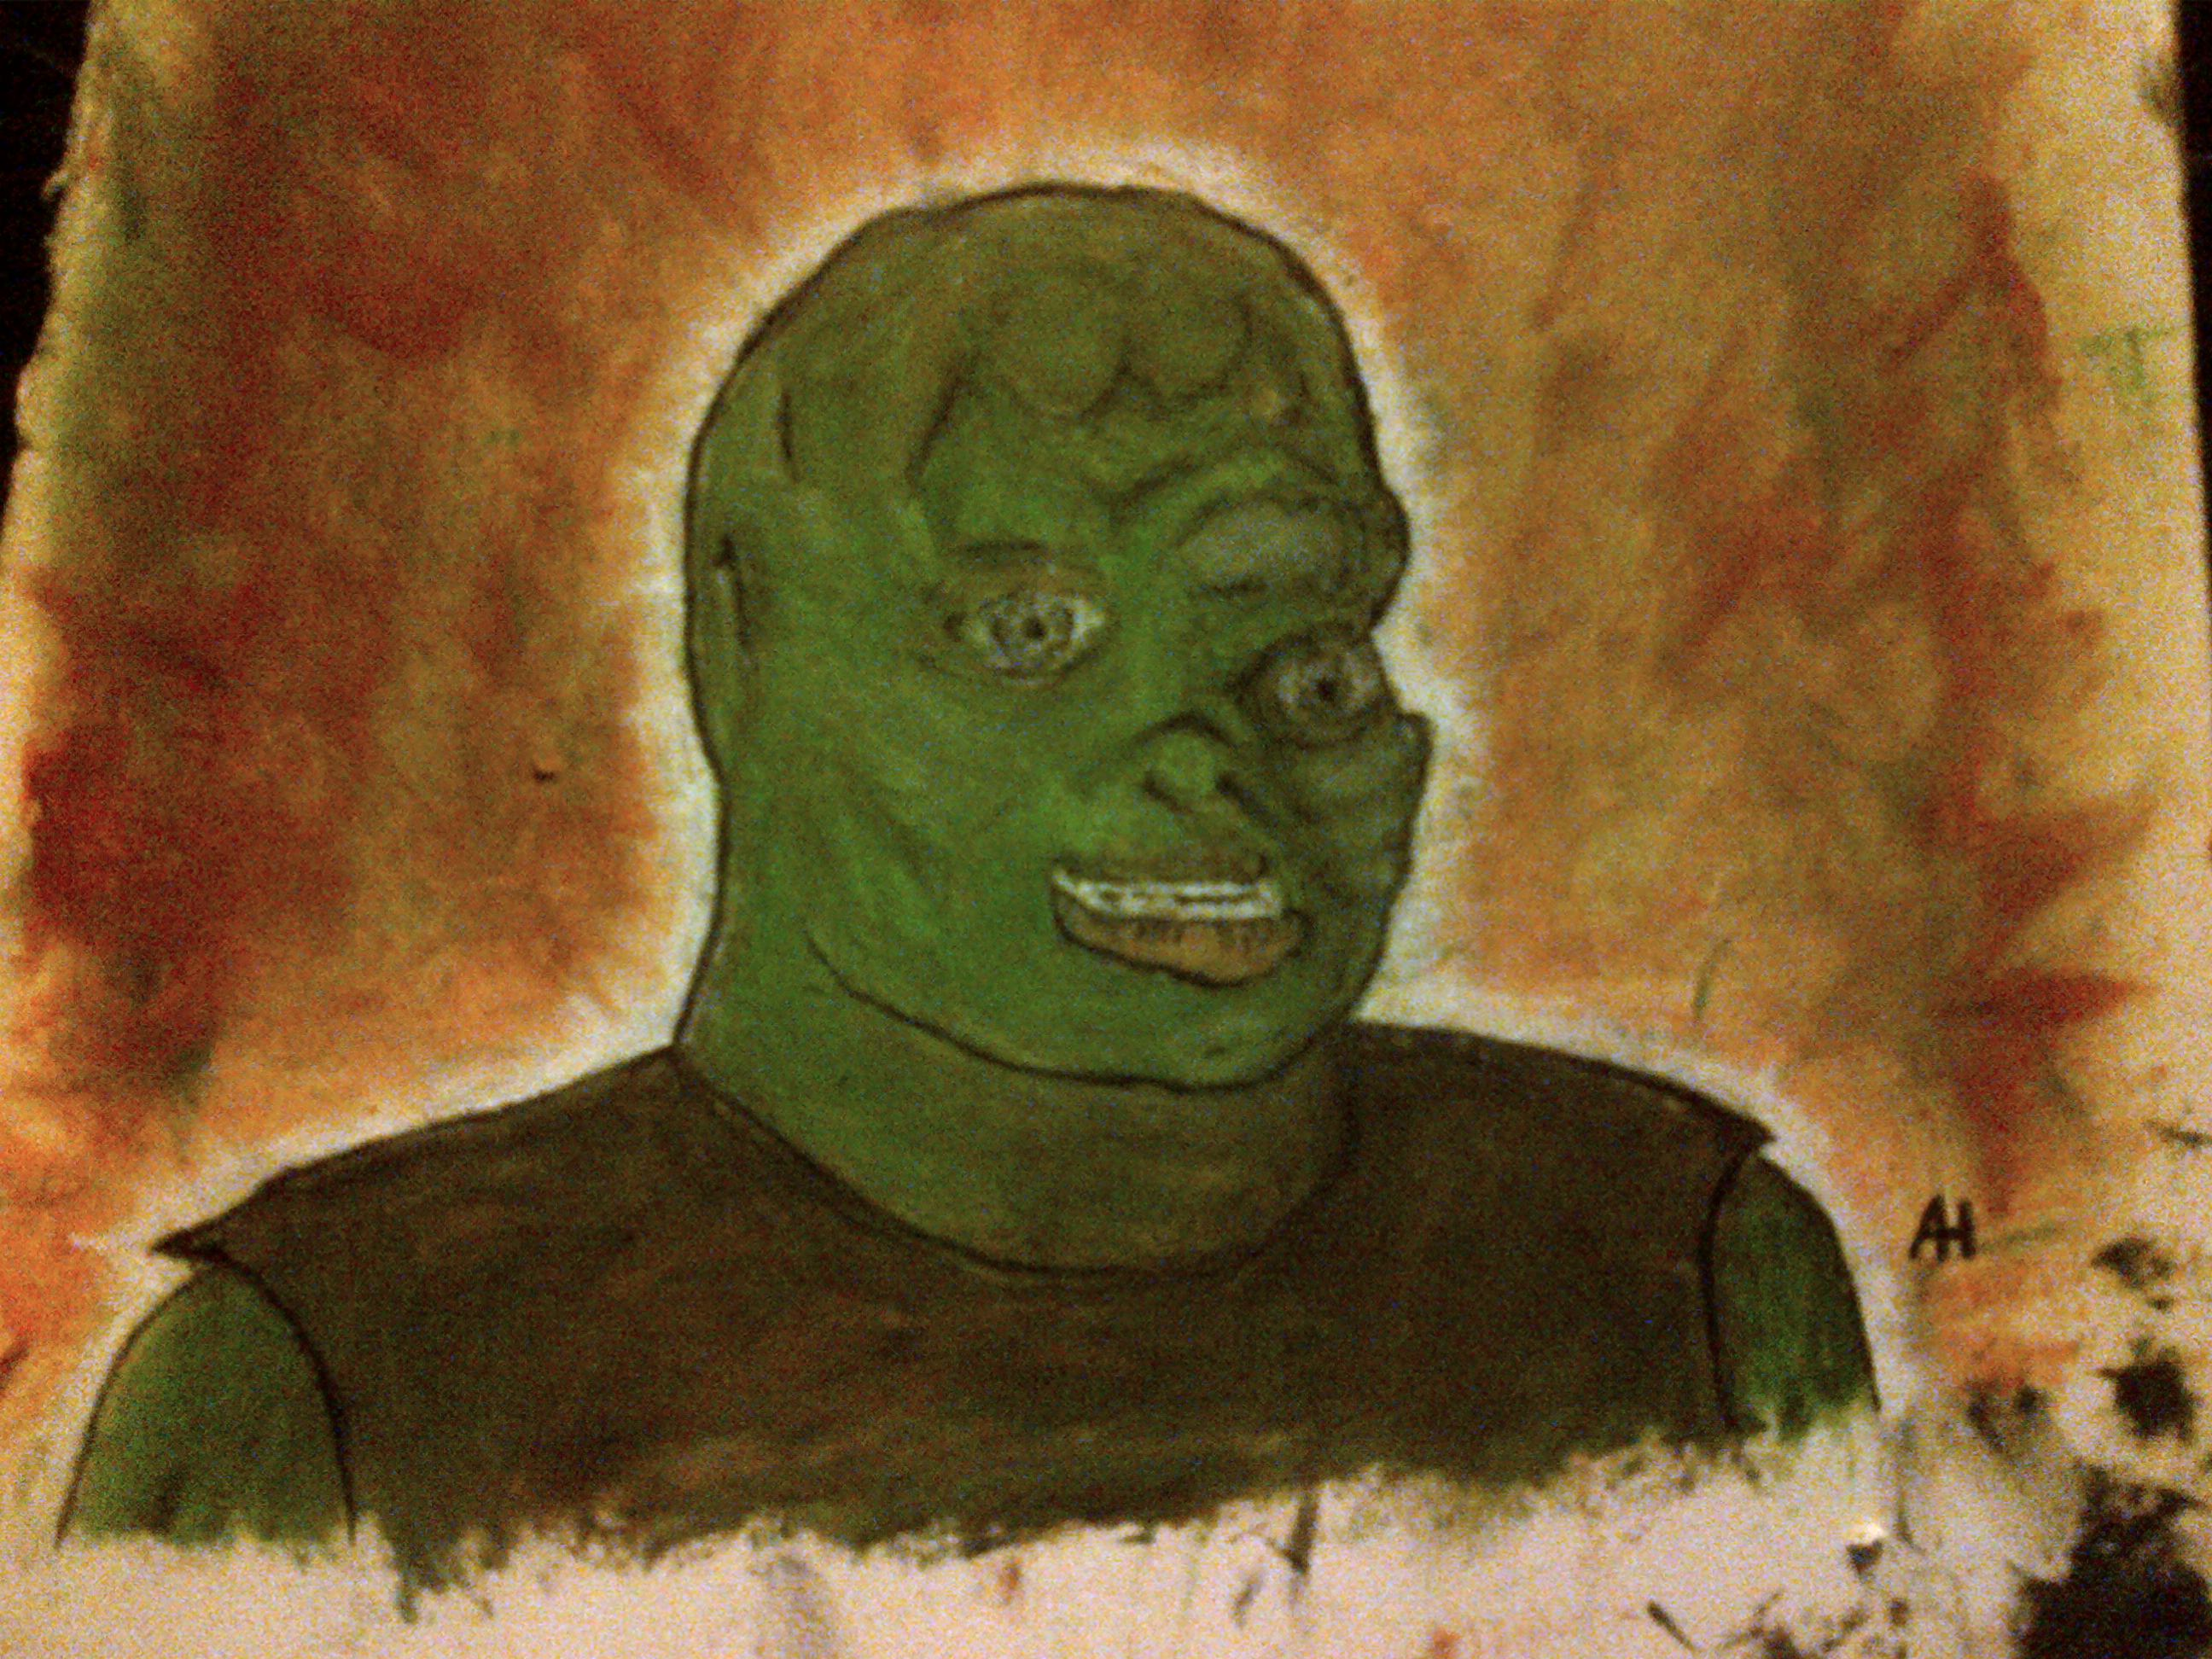 toxie-by-alec-hatch1-jpg